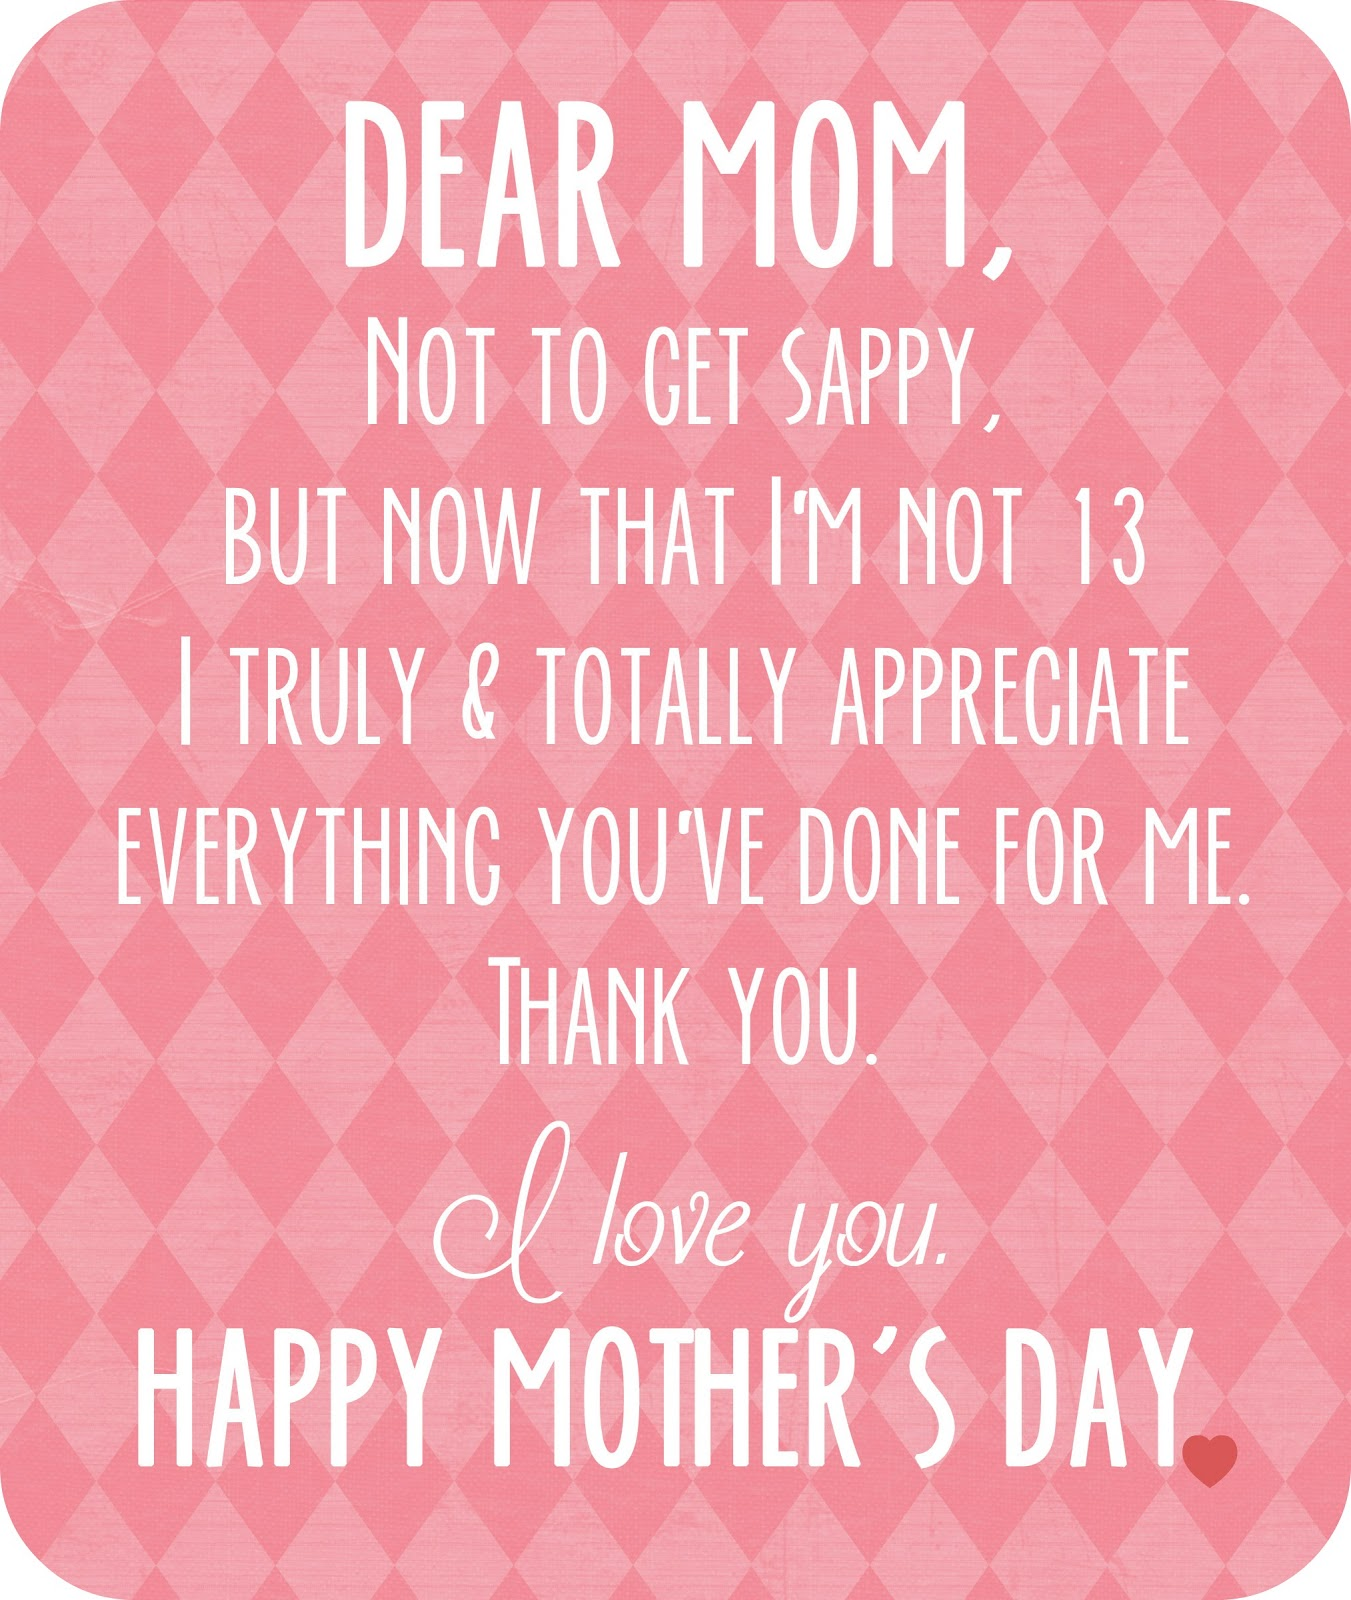 I Love You Mom Quotes In Spanish : crazyloucreations blog crazylou Happy Mother 39 s Day Free Printable